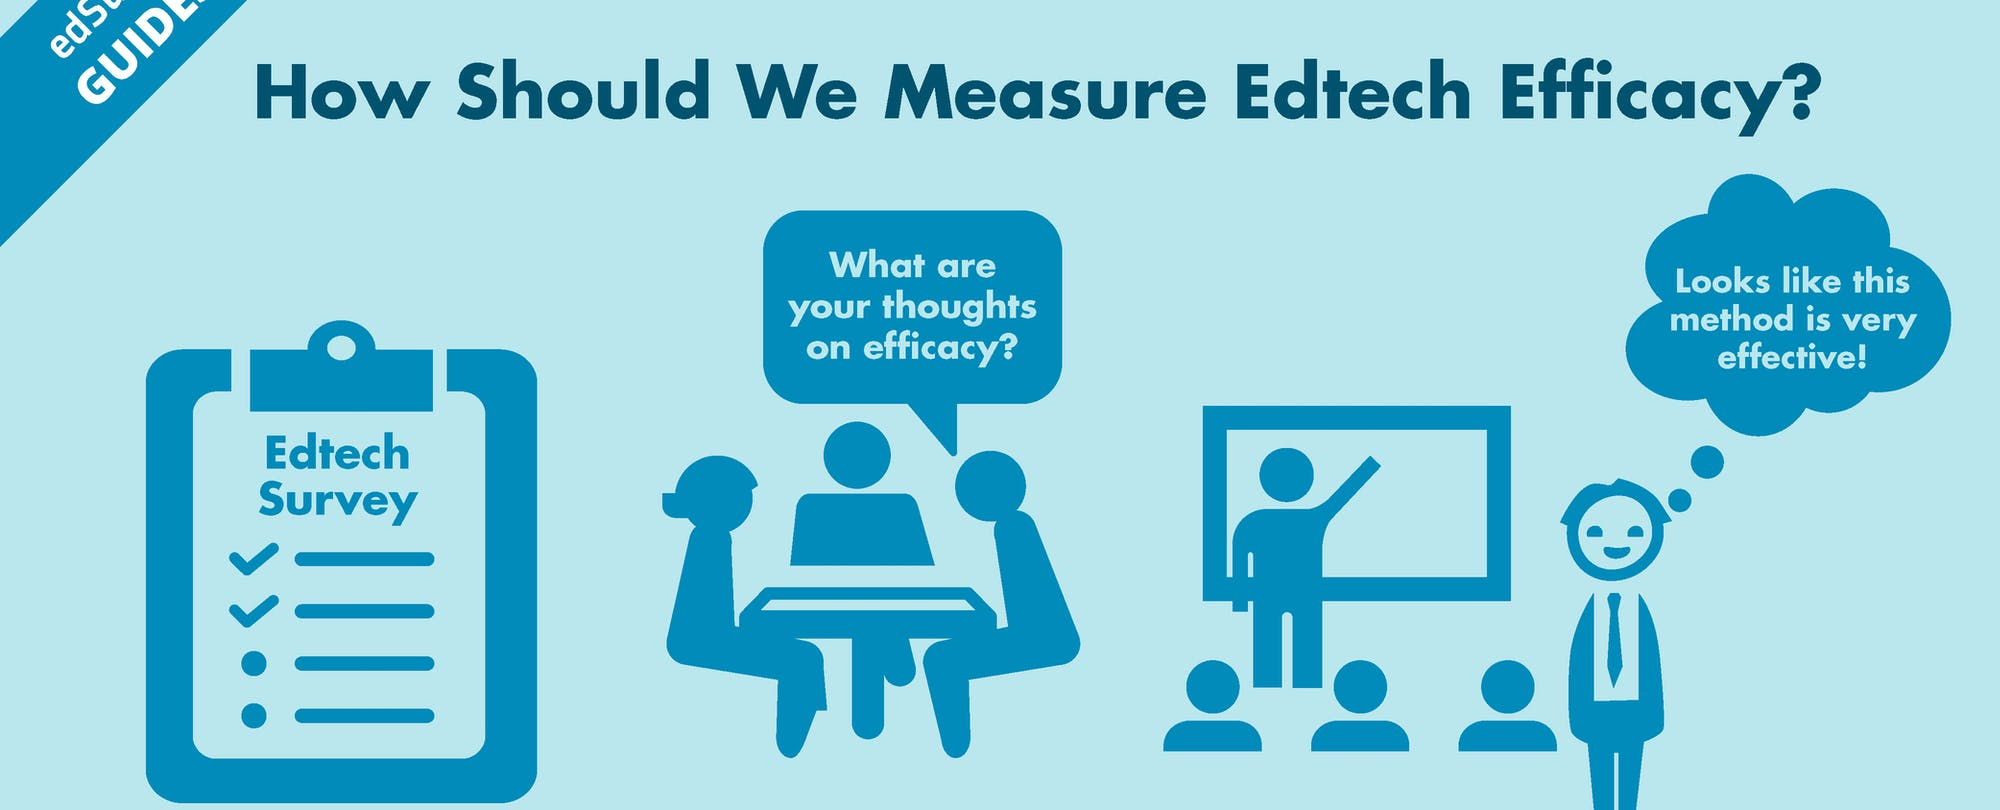 Measuring Efficacy in Edtech